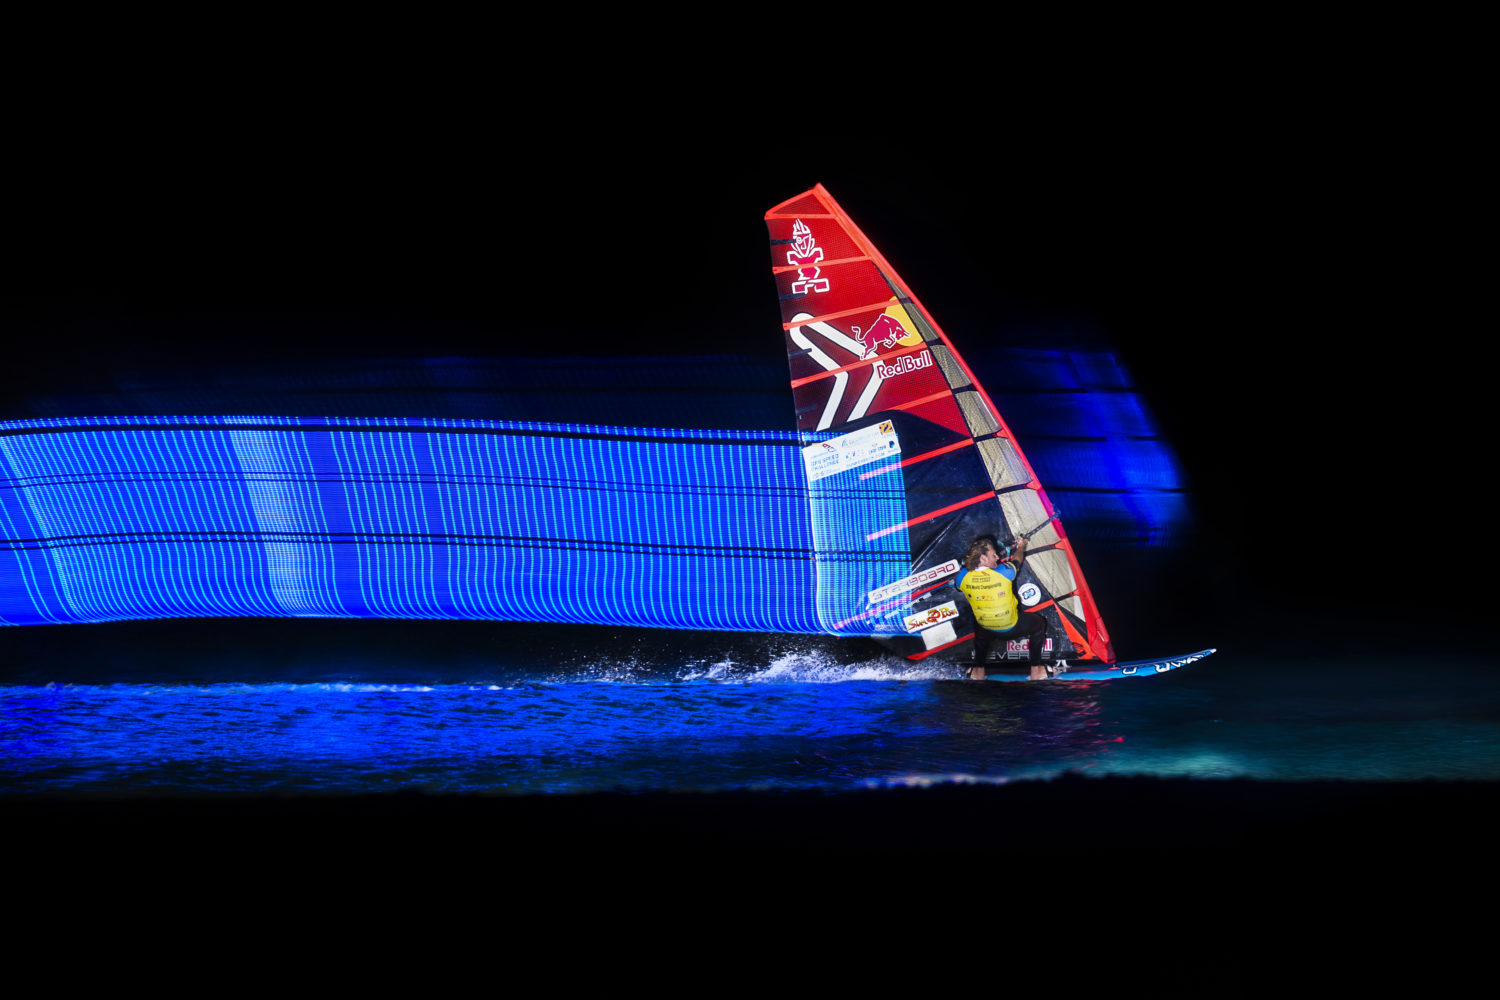 How a Red Bull Photographer Got This Perfect Shot Under Pressure